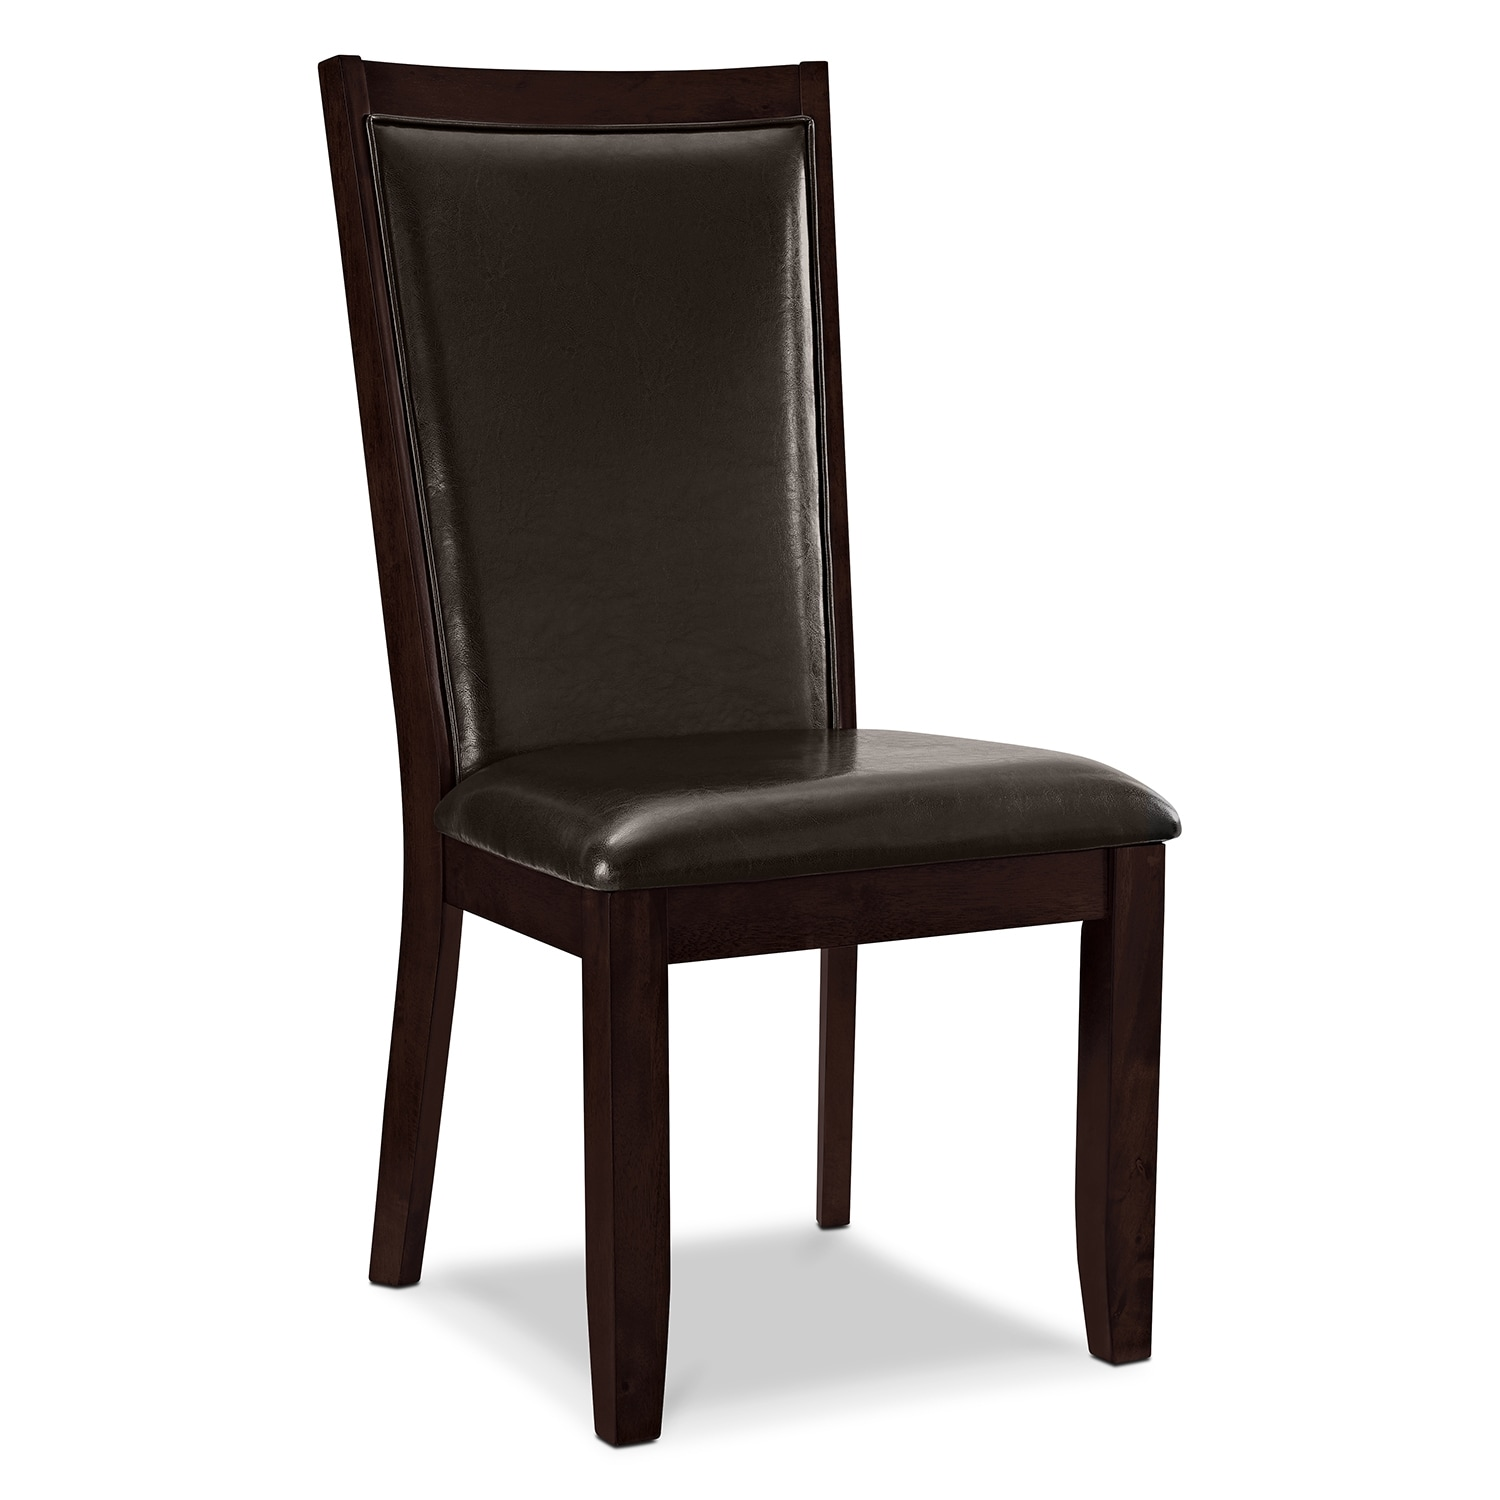 Paragon Chair - Brown